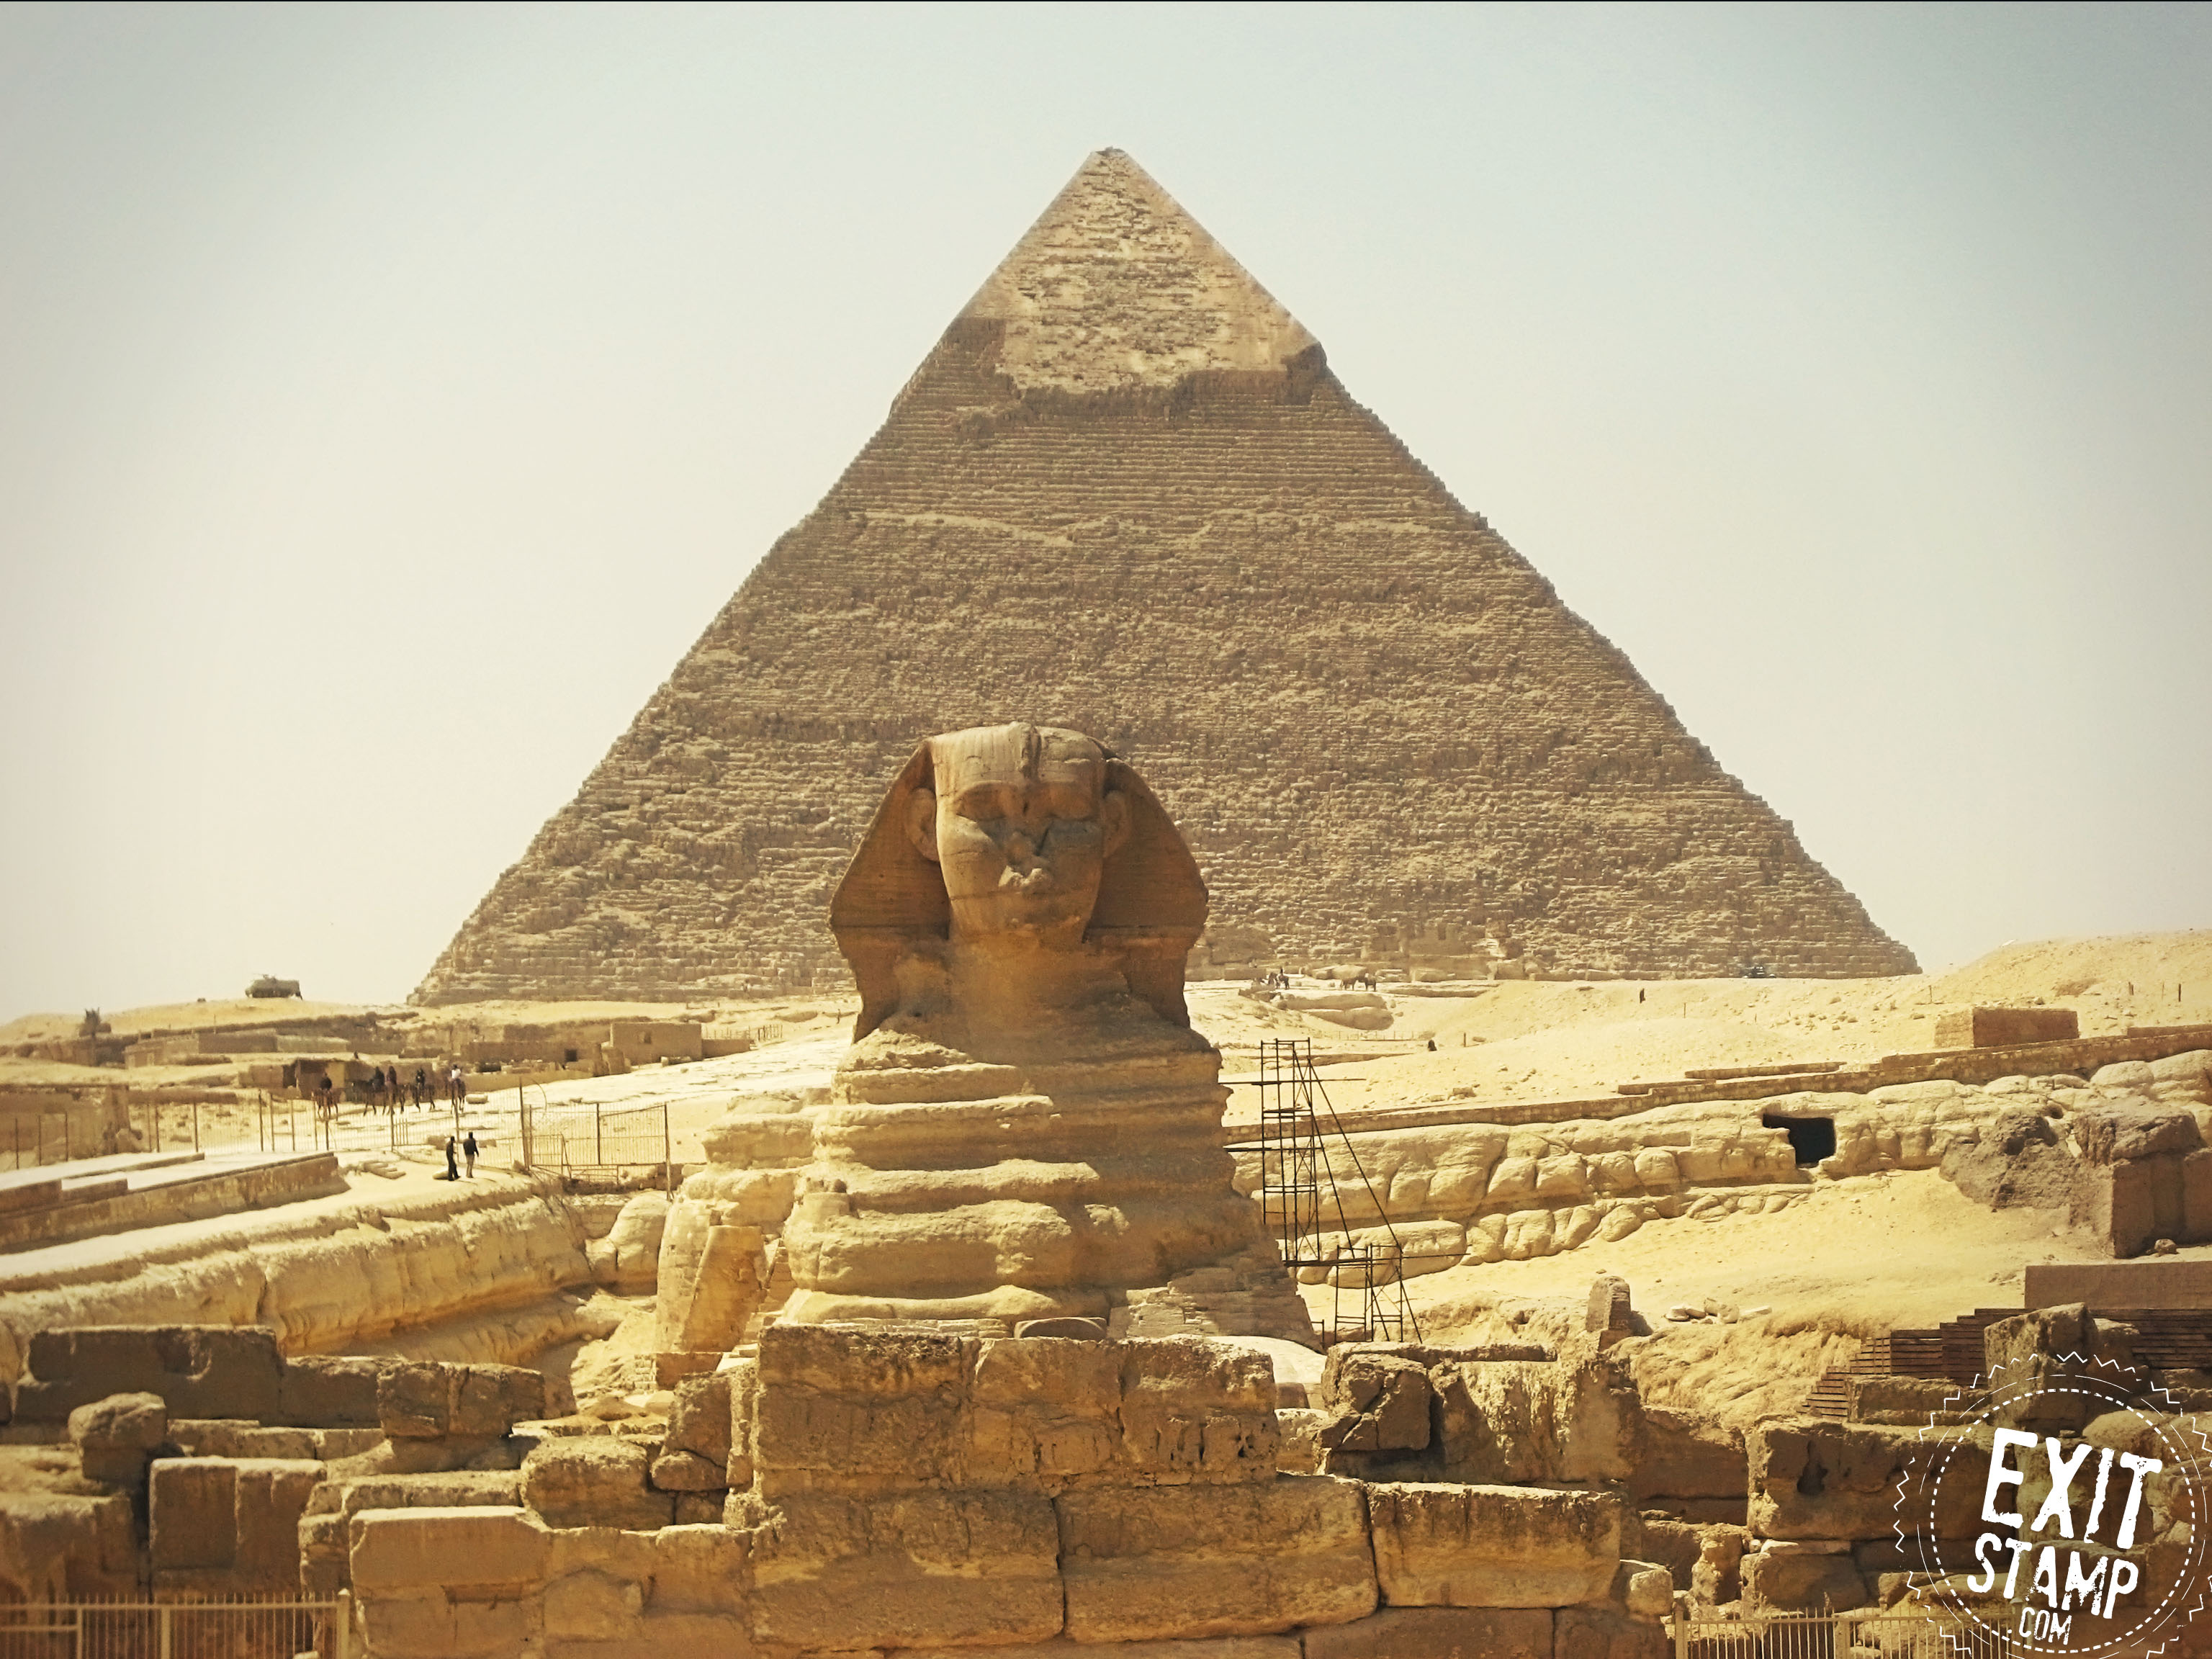 Sphinx Giza Pyramid Egypt